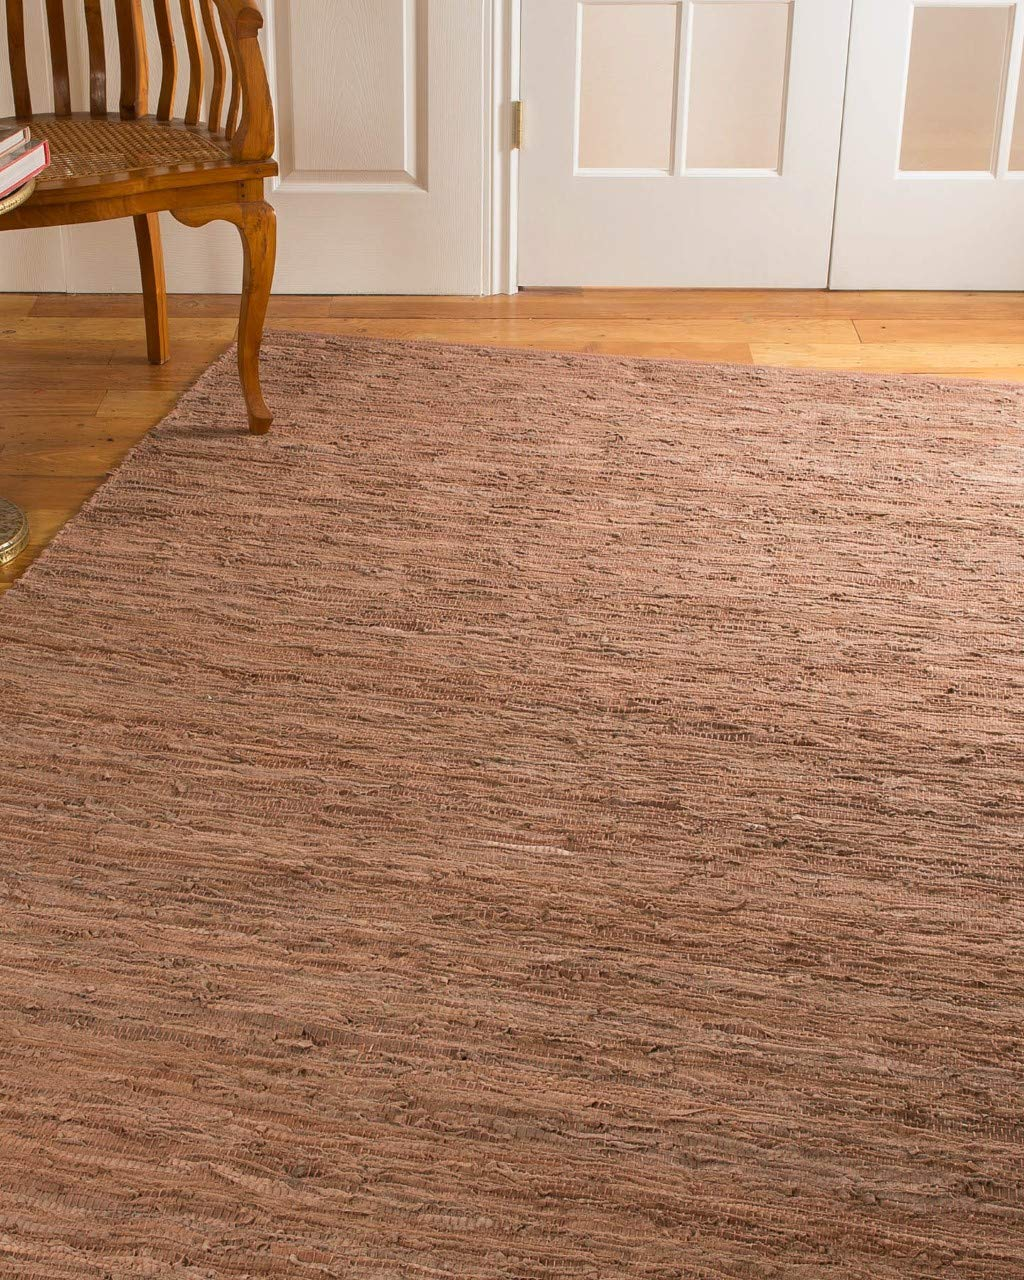 Natural Area Rugs Handmade Reversible Biscayne Leather Rug 6 x 9 Pinkish Brown